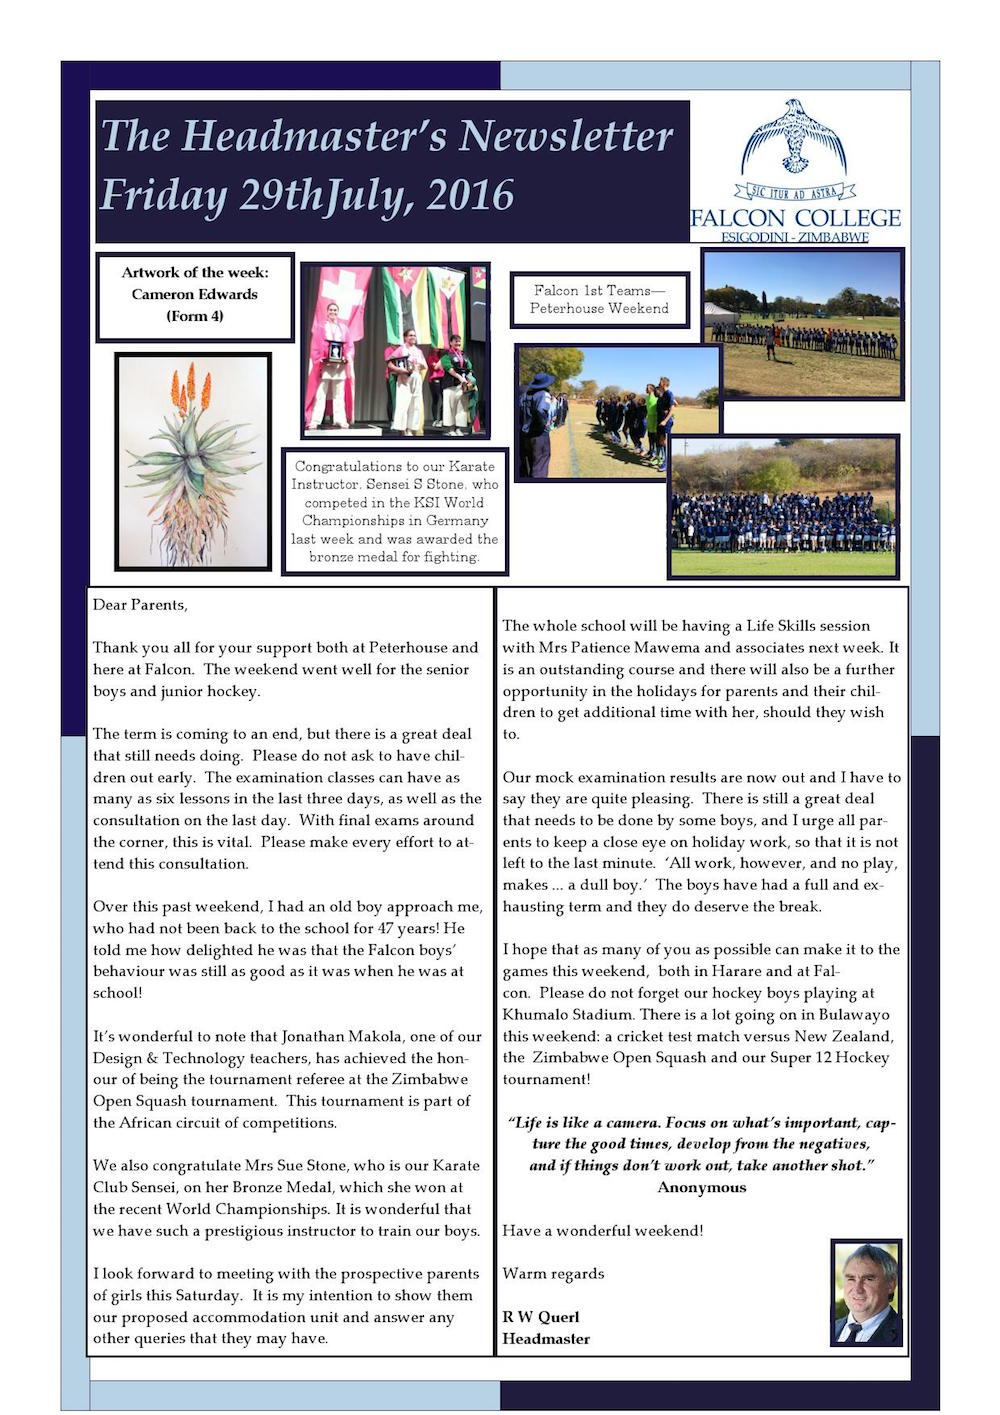 Headmaster's Newsletter Friday 29th July 2016 edited_000001